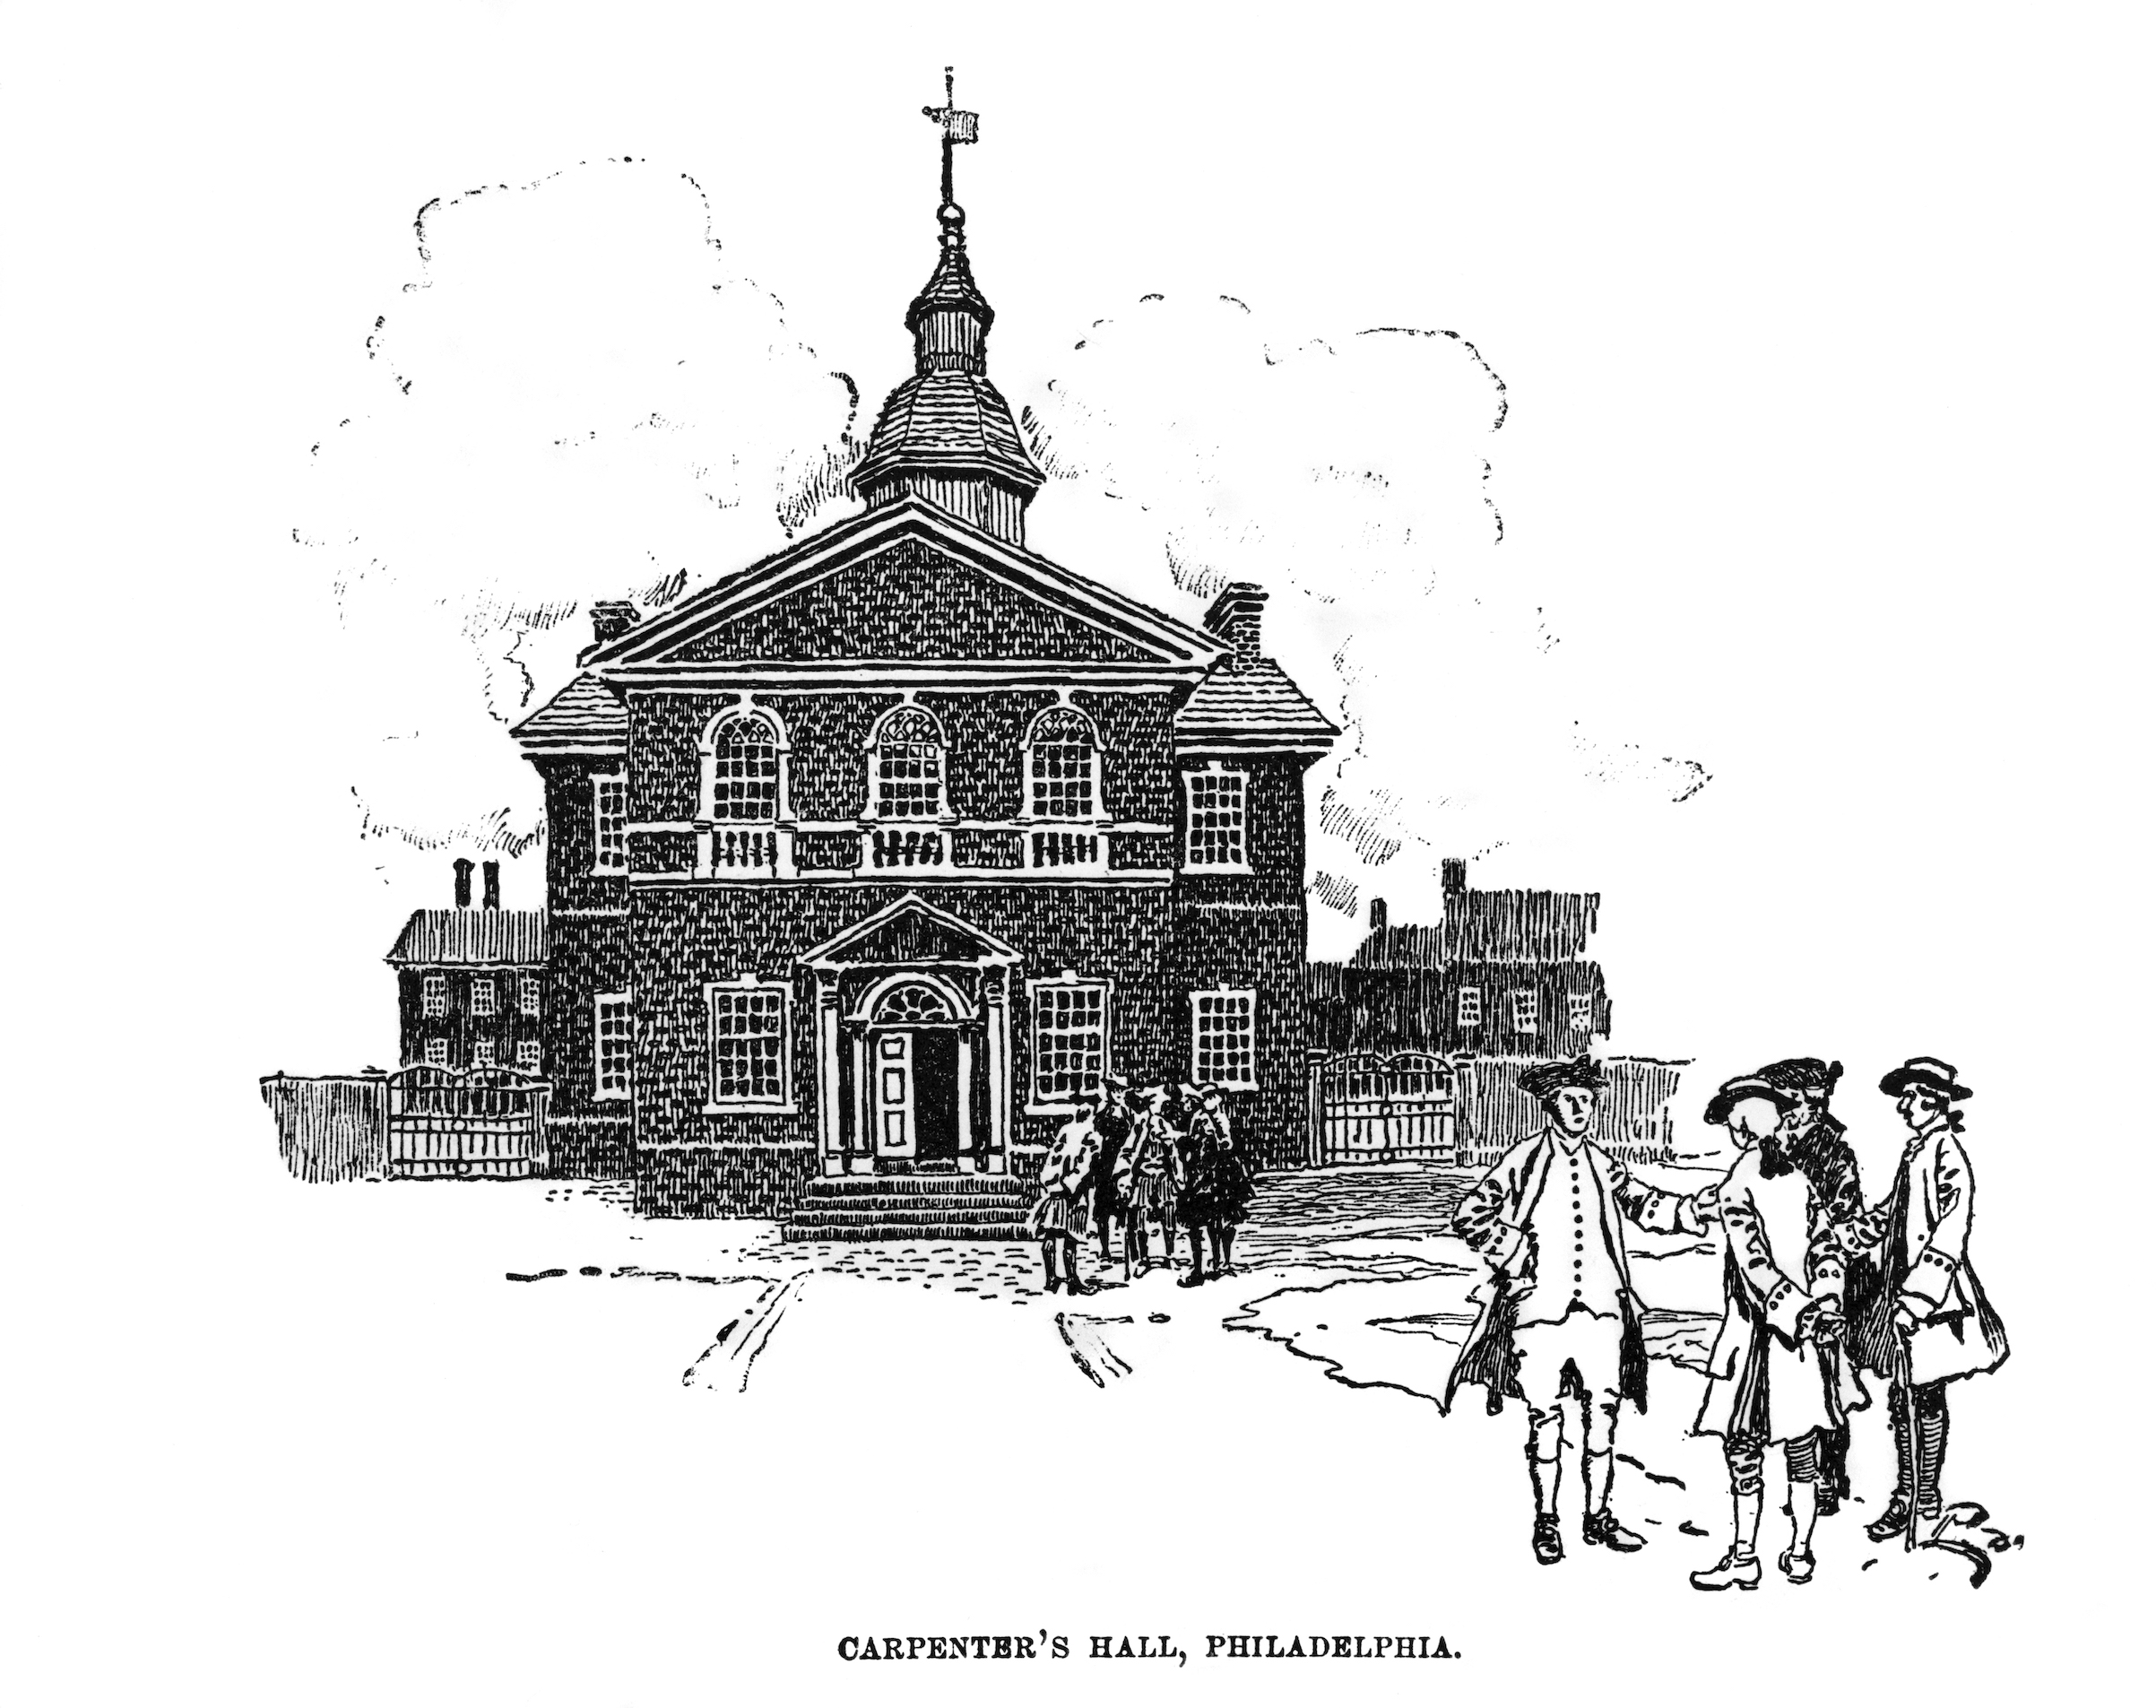 Engraving of Carpenter's Hall in Philadelphia in the 18th century